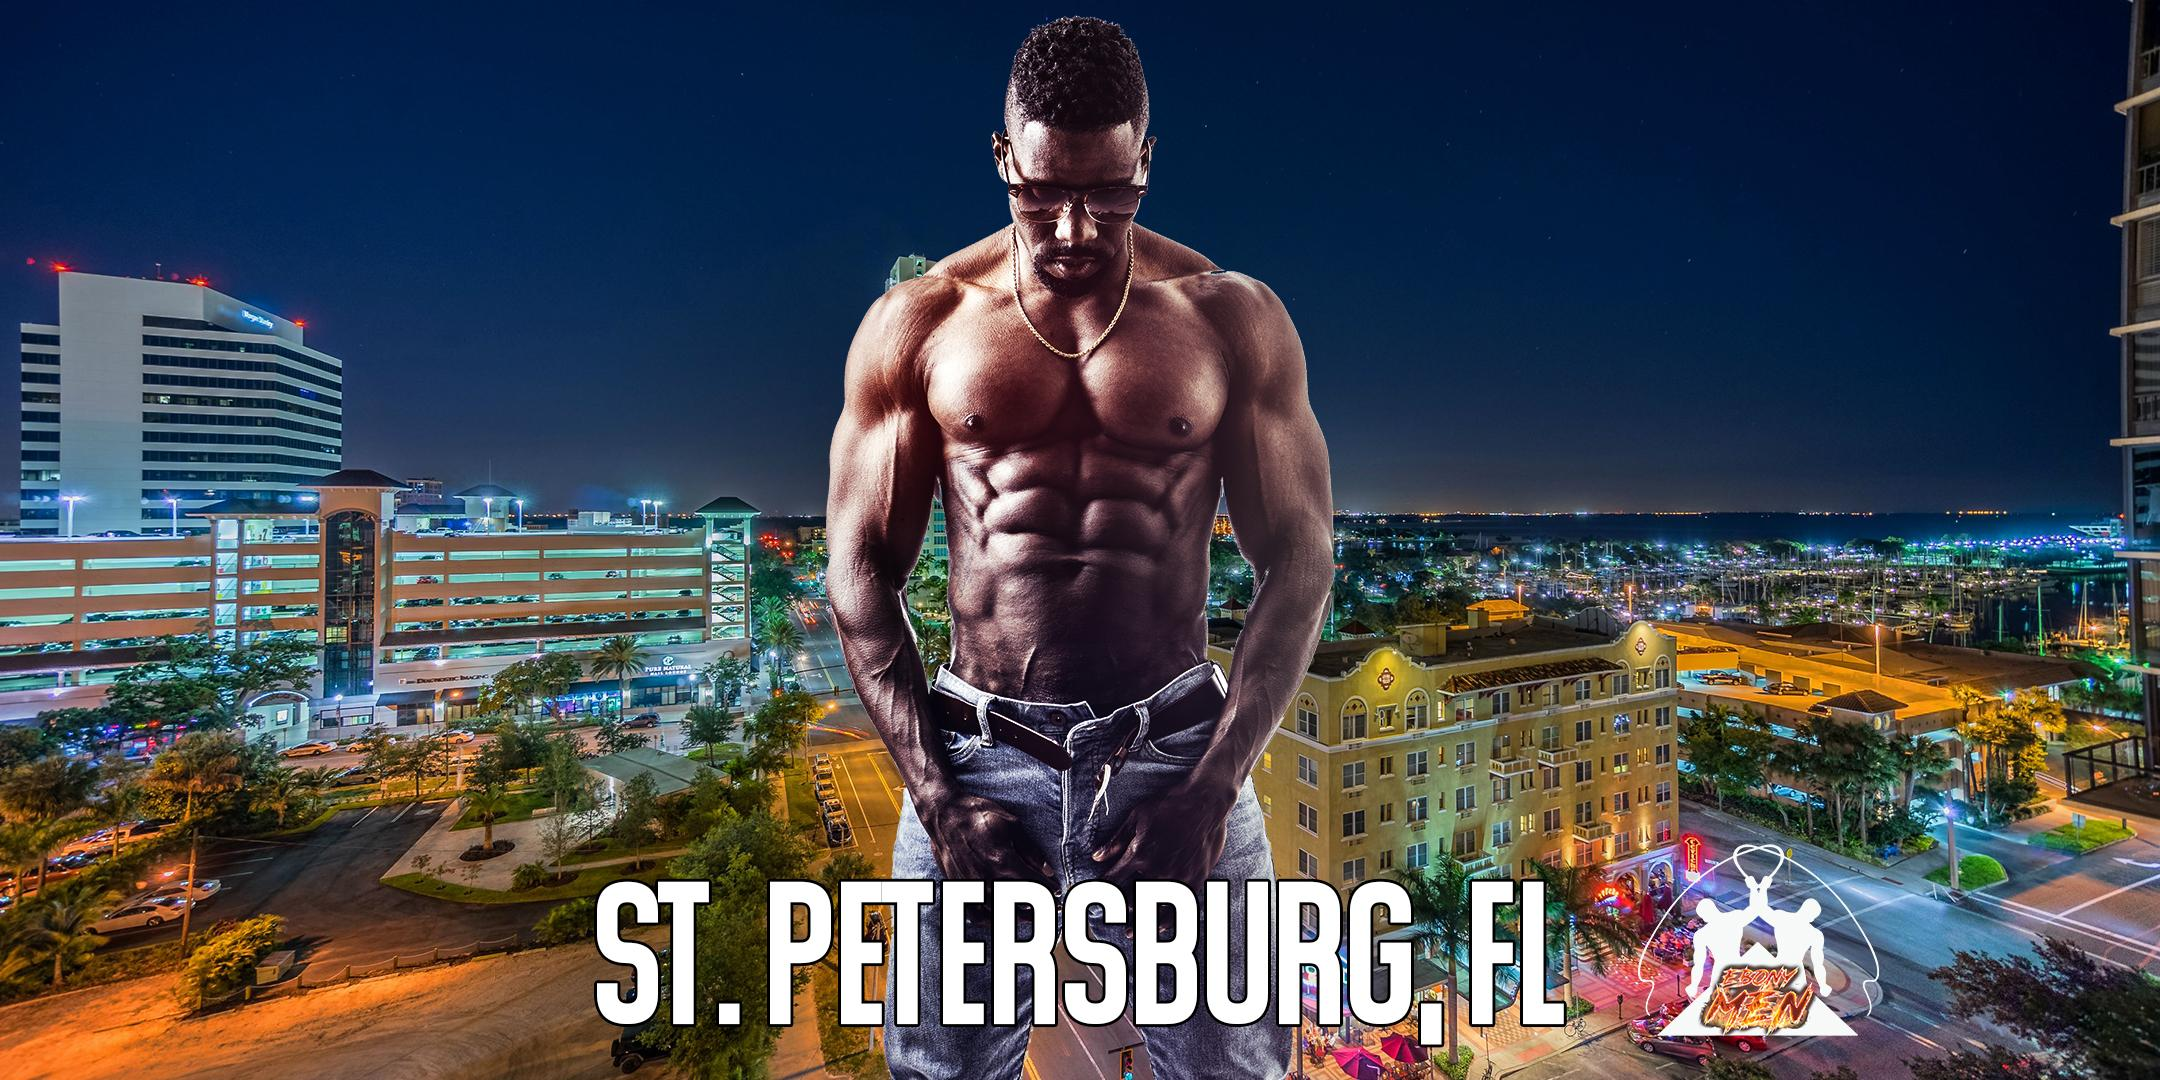 Ebony Men Black Male Revue Strip Clubs & Black Male Strippers St Petersburg, FL 8-10 PM